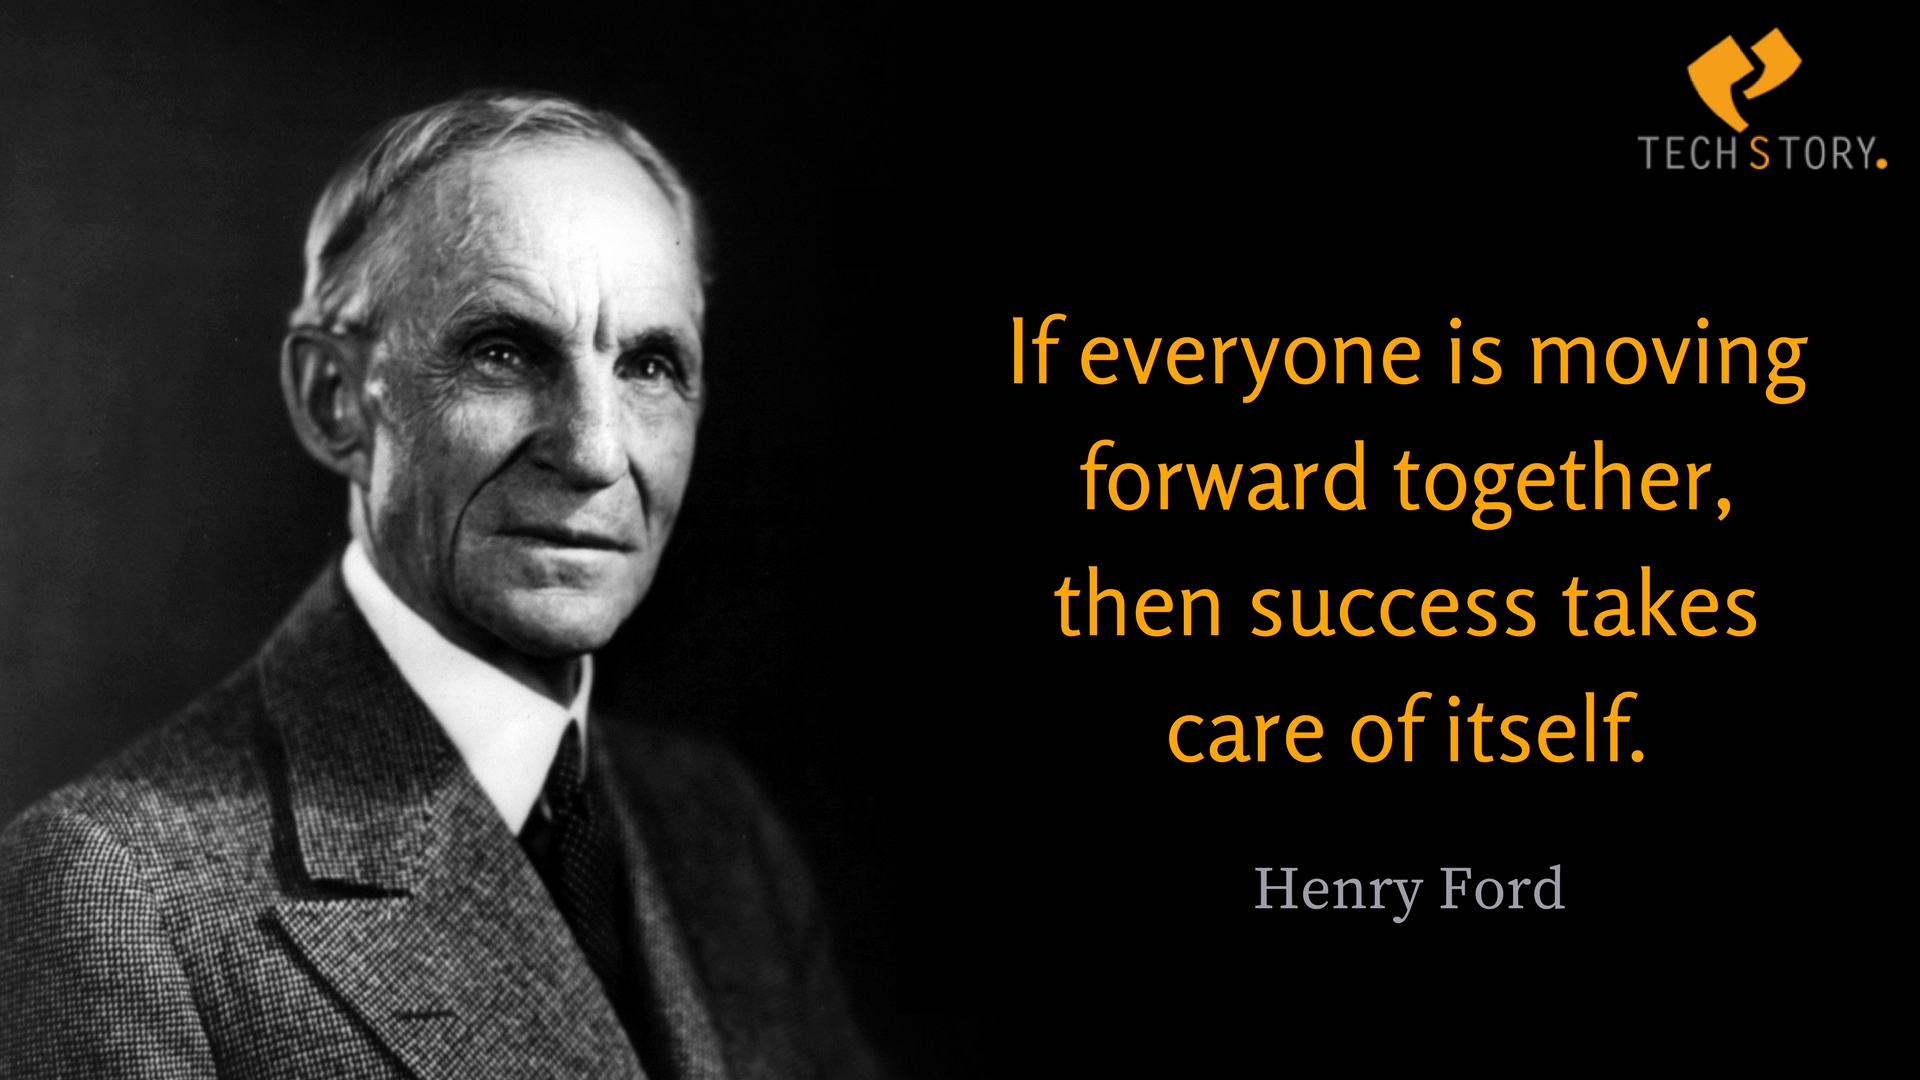 the rise to success of henry ford How henry ford overcame his failures and exercised perseverance to achieve his goals overcoming failure: the perseverance of henry ford but it was these early failures that taught him valuable lessons and sparked his future success.